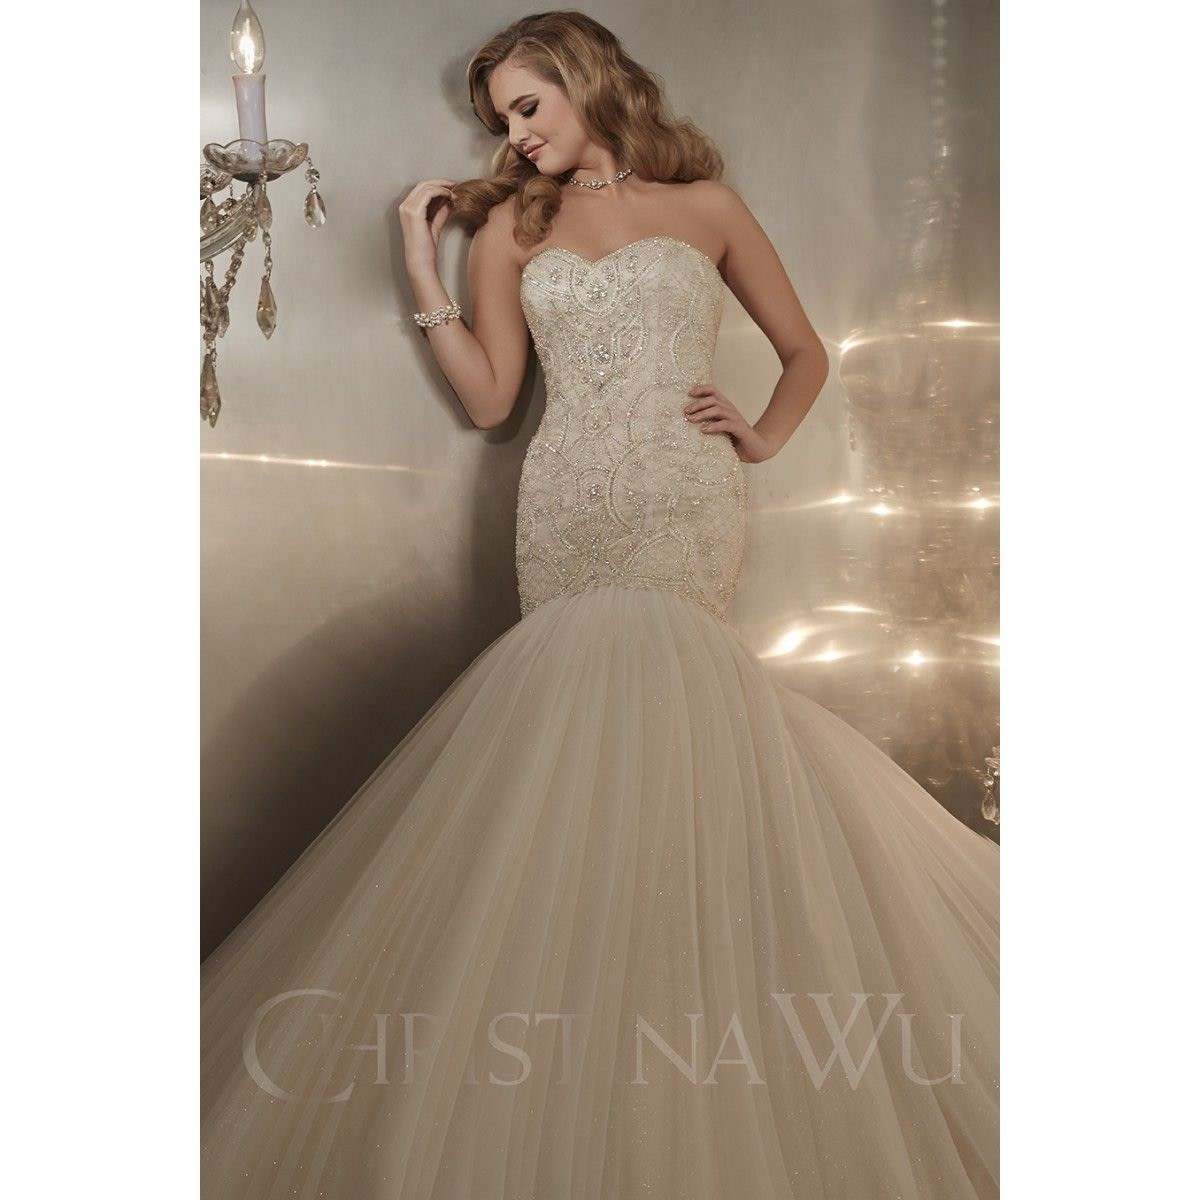 available-at-spotlight-formal-wear-blingy-top-glitter-tulle-fit-n-flare-wedding-gown-1200x1200.jpg